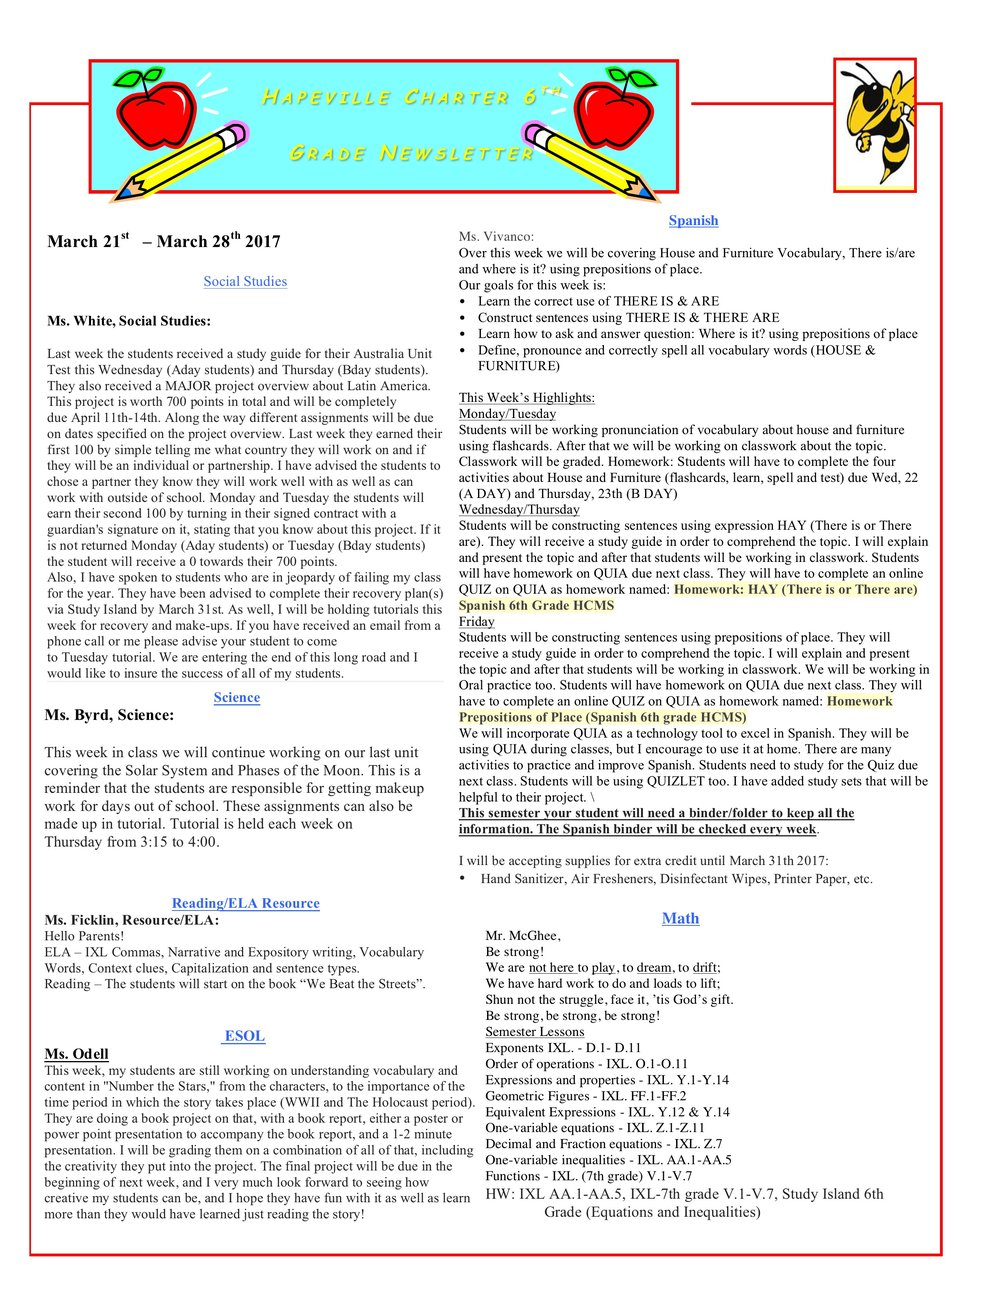 Newsletter Image6th Grade Newsletter 3-21-17.jpeg